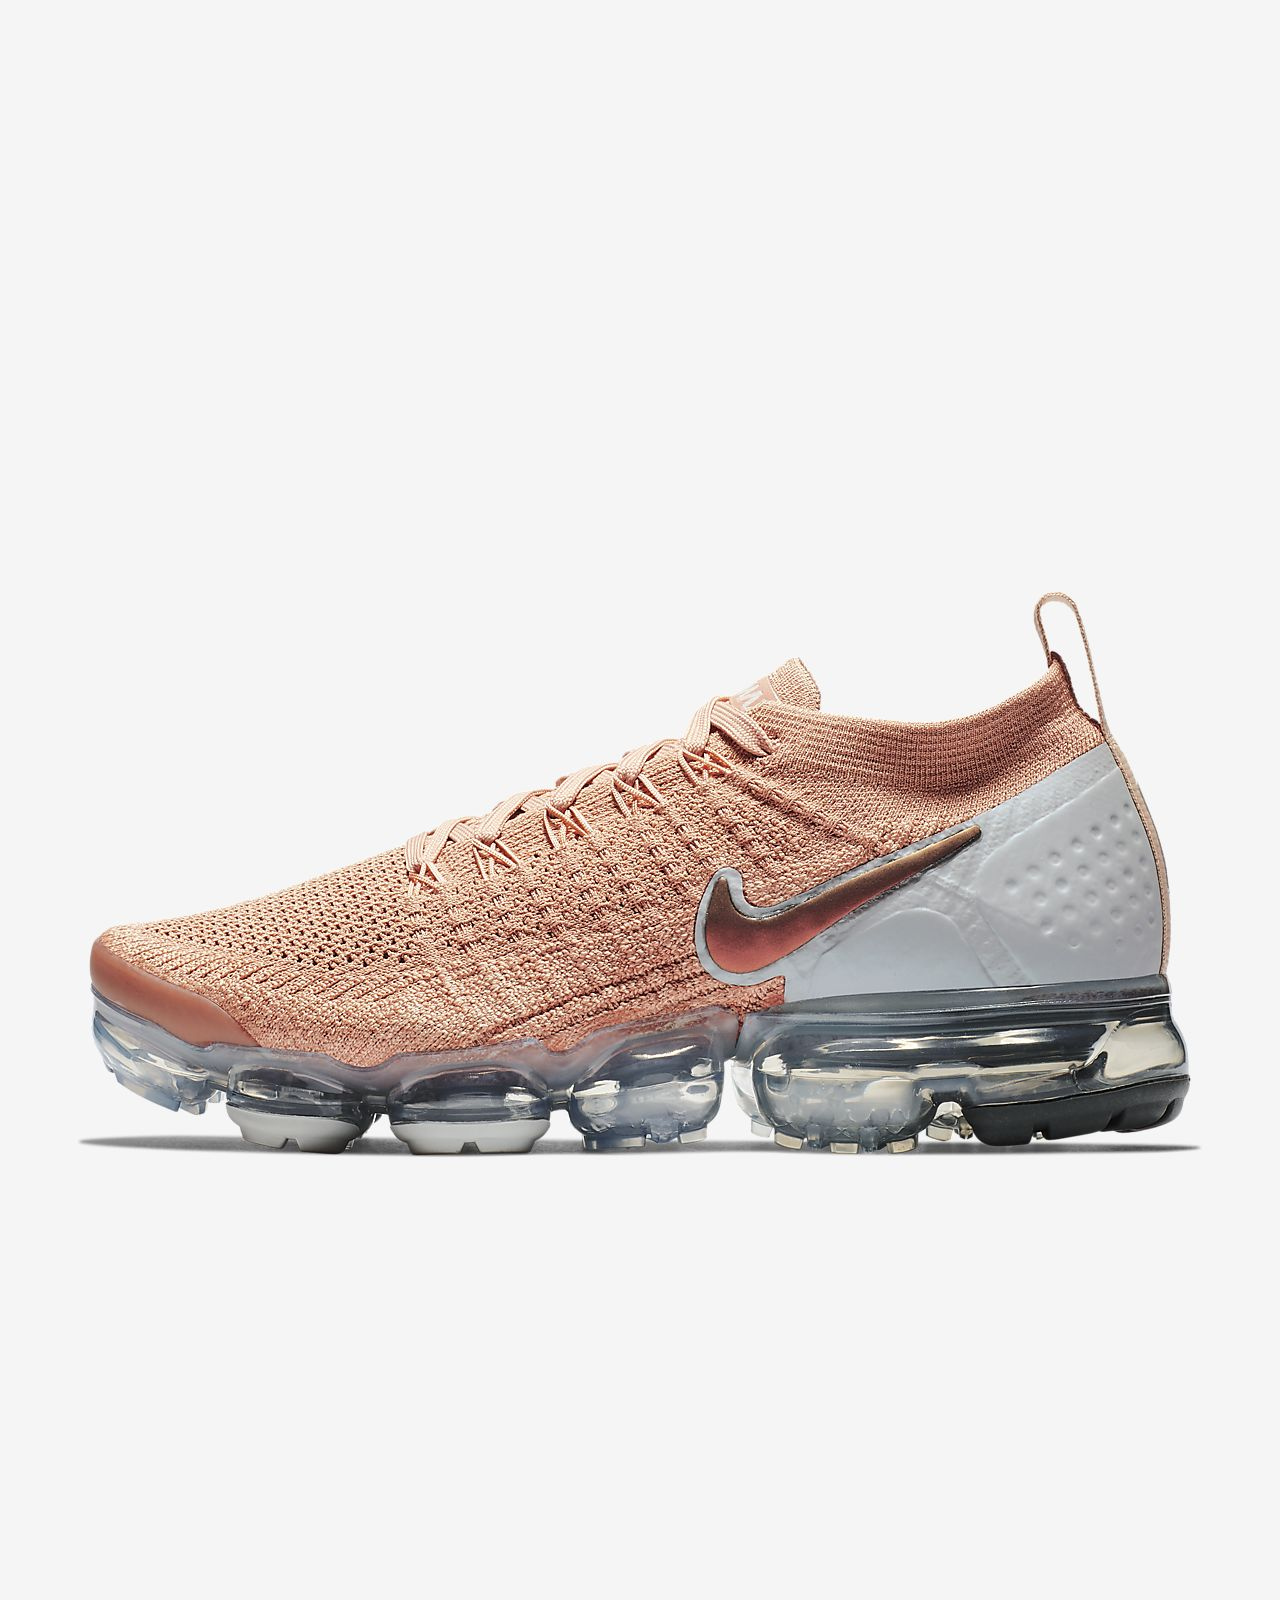 separation shoes 14b47 5a344 ... Chaussure Nike Air VaporMax Flyknit 2 pour Femme